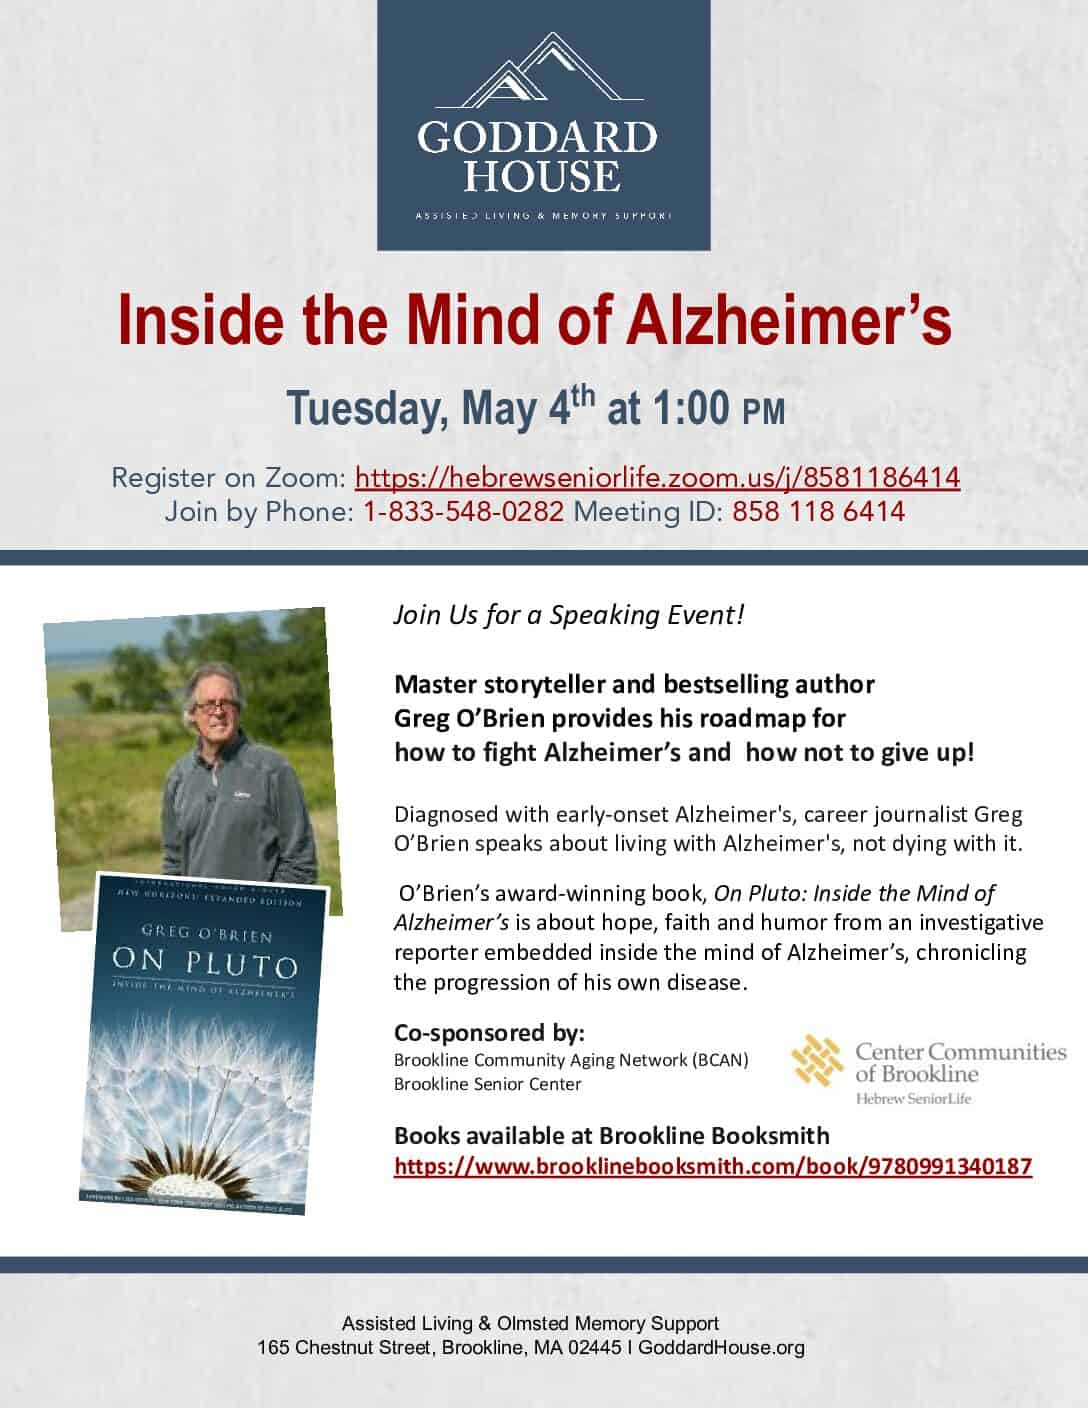 Greg O'Brien: Inside the Mind of Alzheimer's